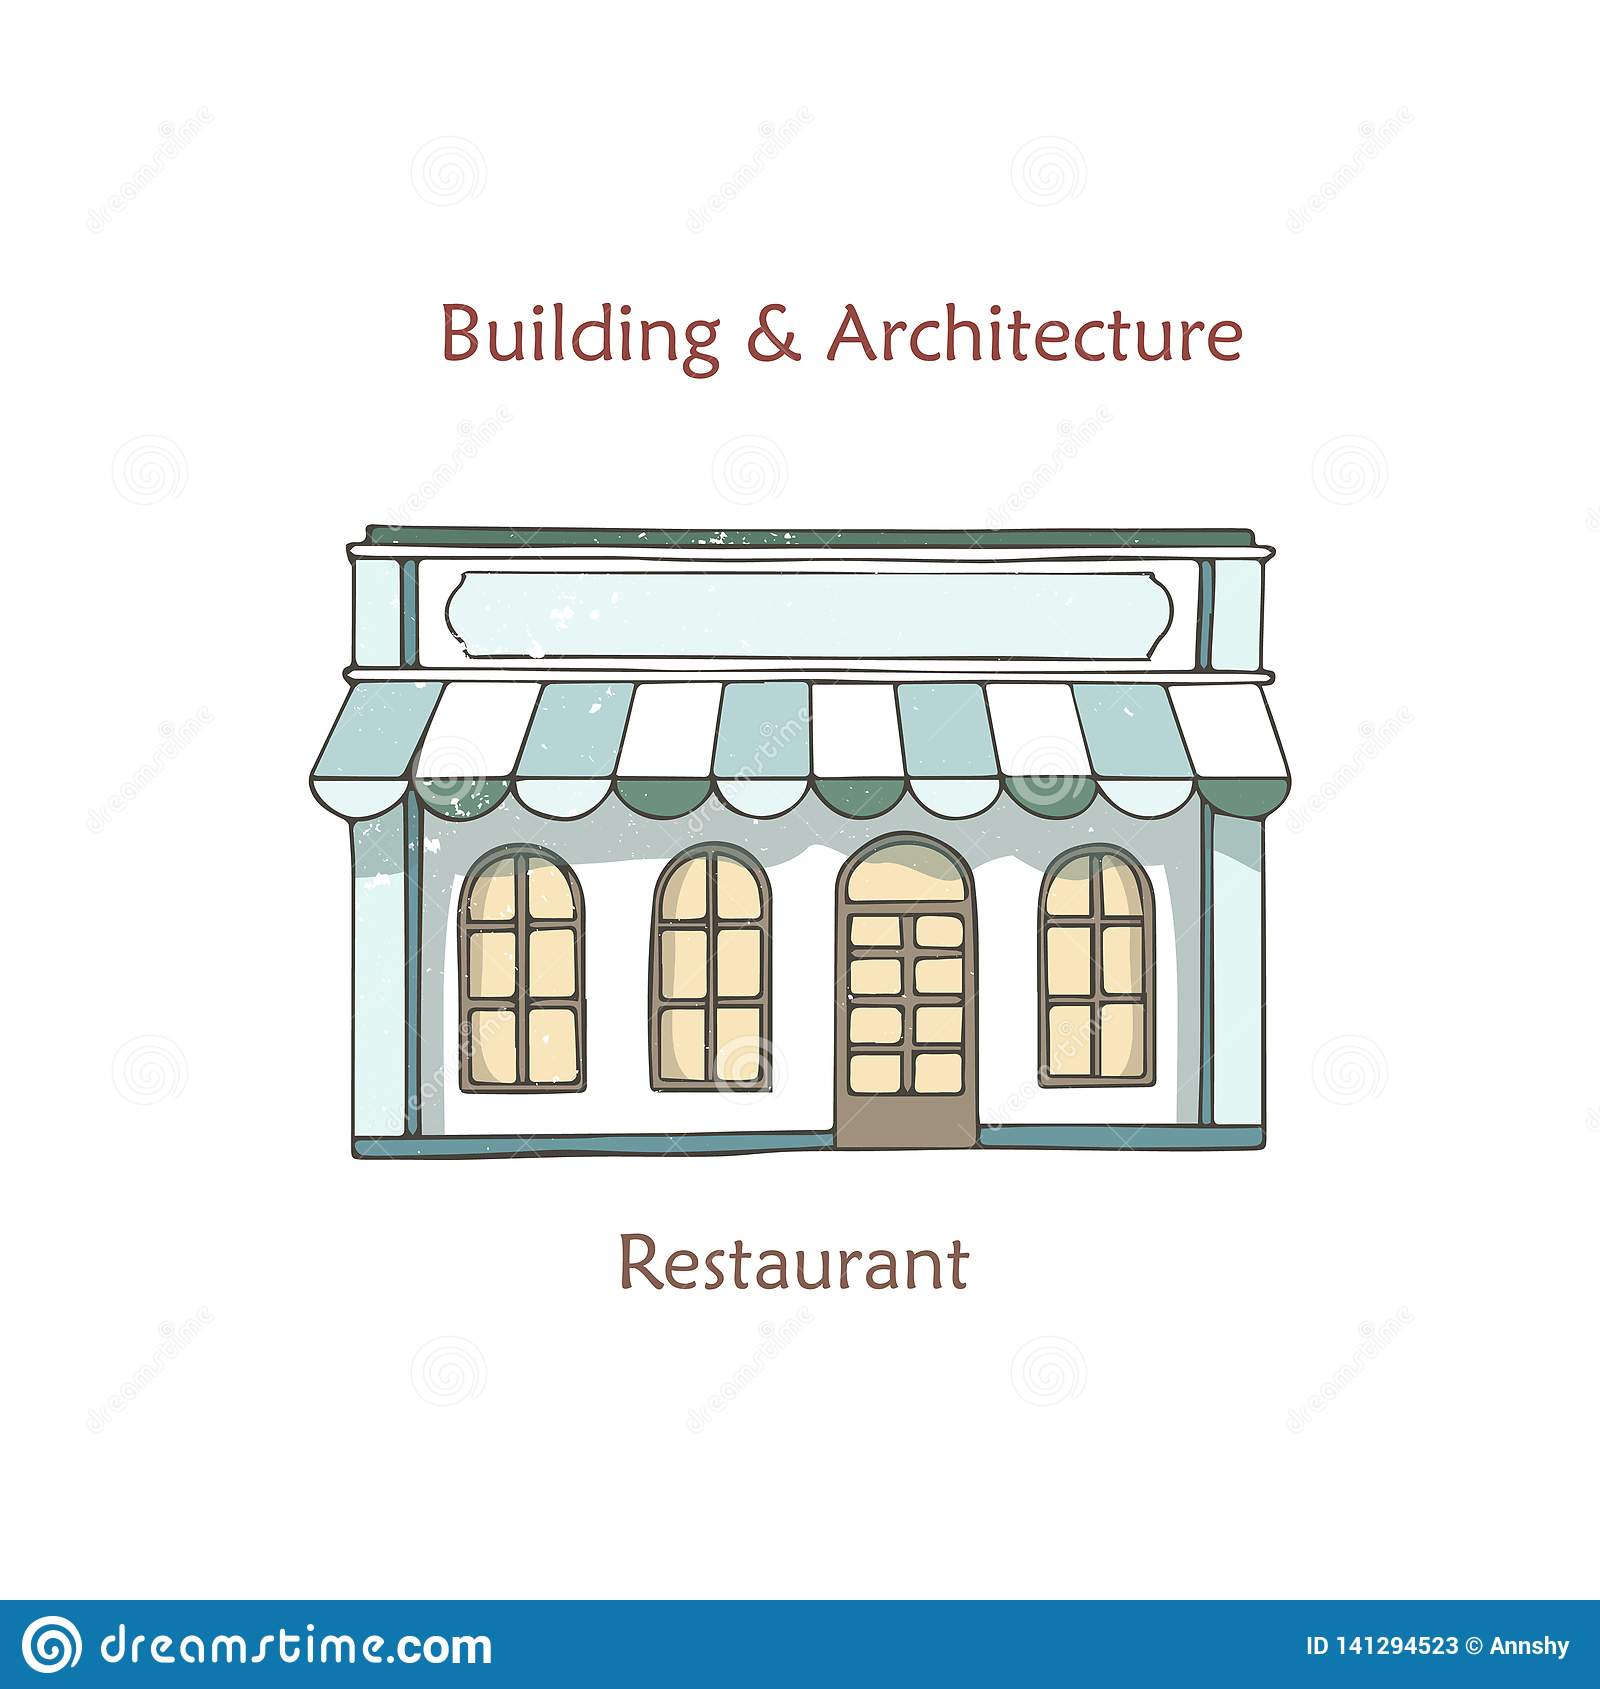 Vector Exterior Restaurant Cafe Shop Front Stock Illustrations 2 247 Vector Exterior Restaurant Cafe Shop Front Stock Illustrations Vectors Clipart Dreamstime